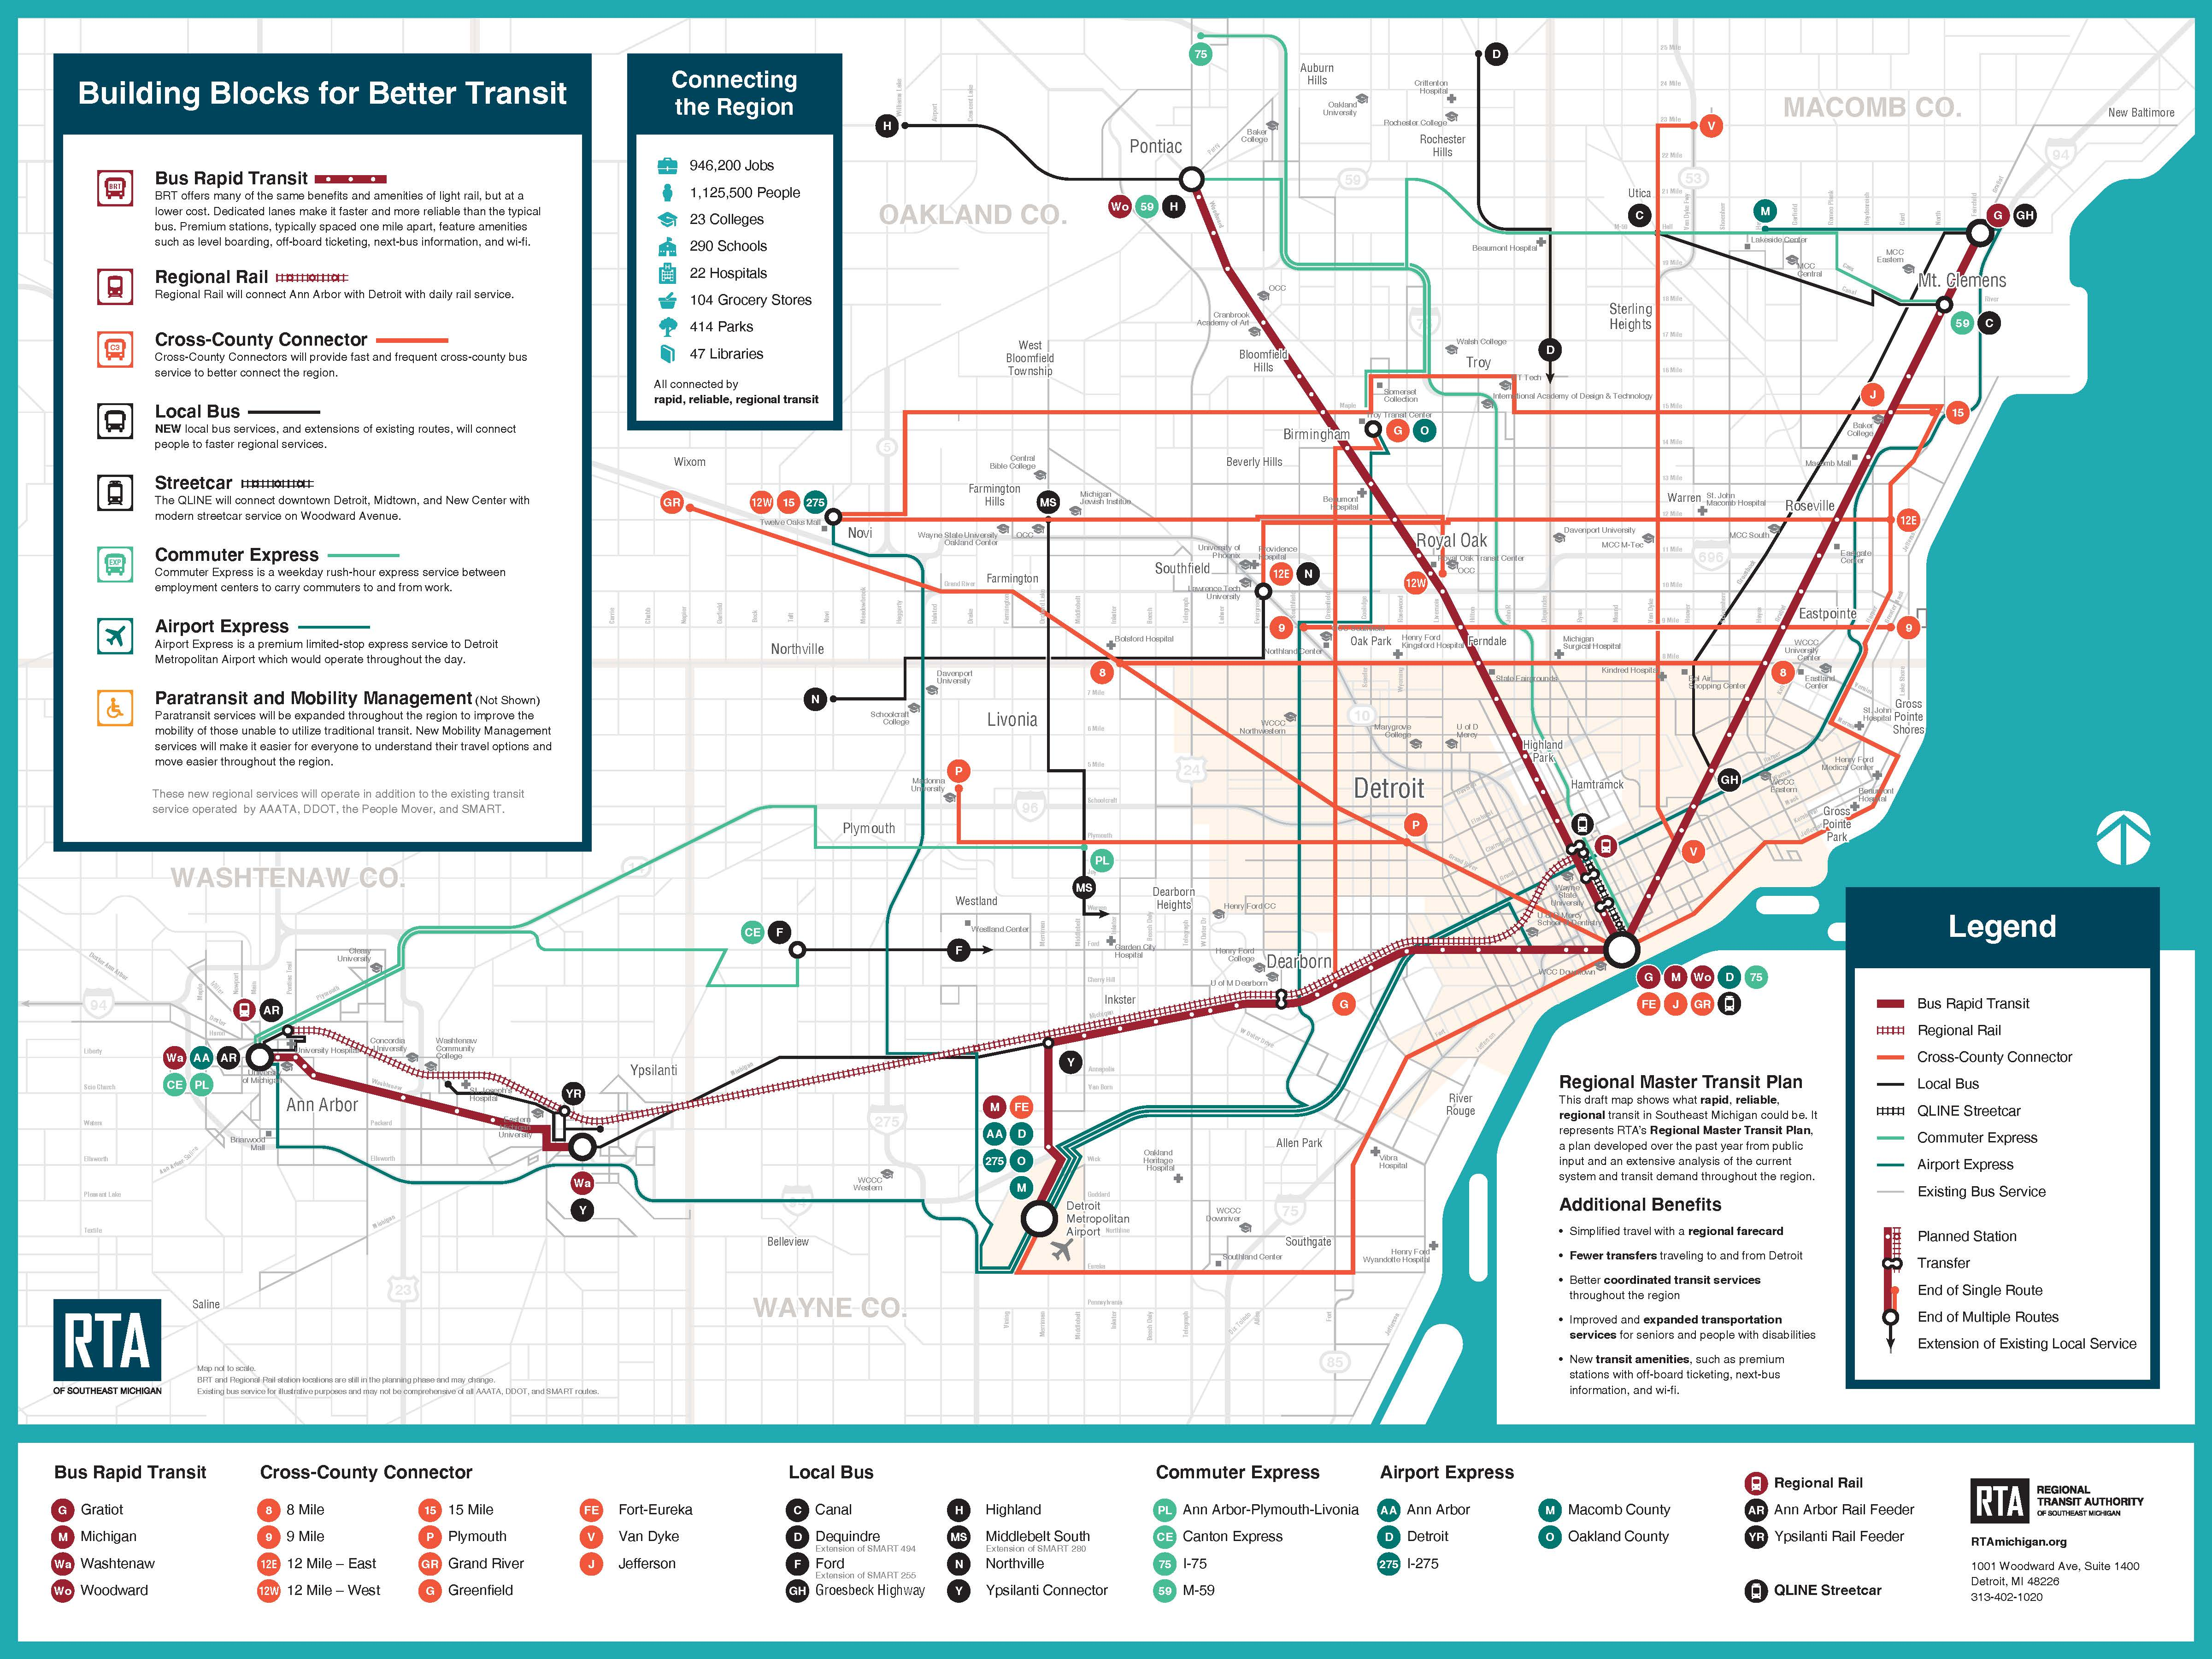 Southeastern Michigan Map.Rta Board To Vote On Master Transit Plan For Southeastern